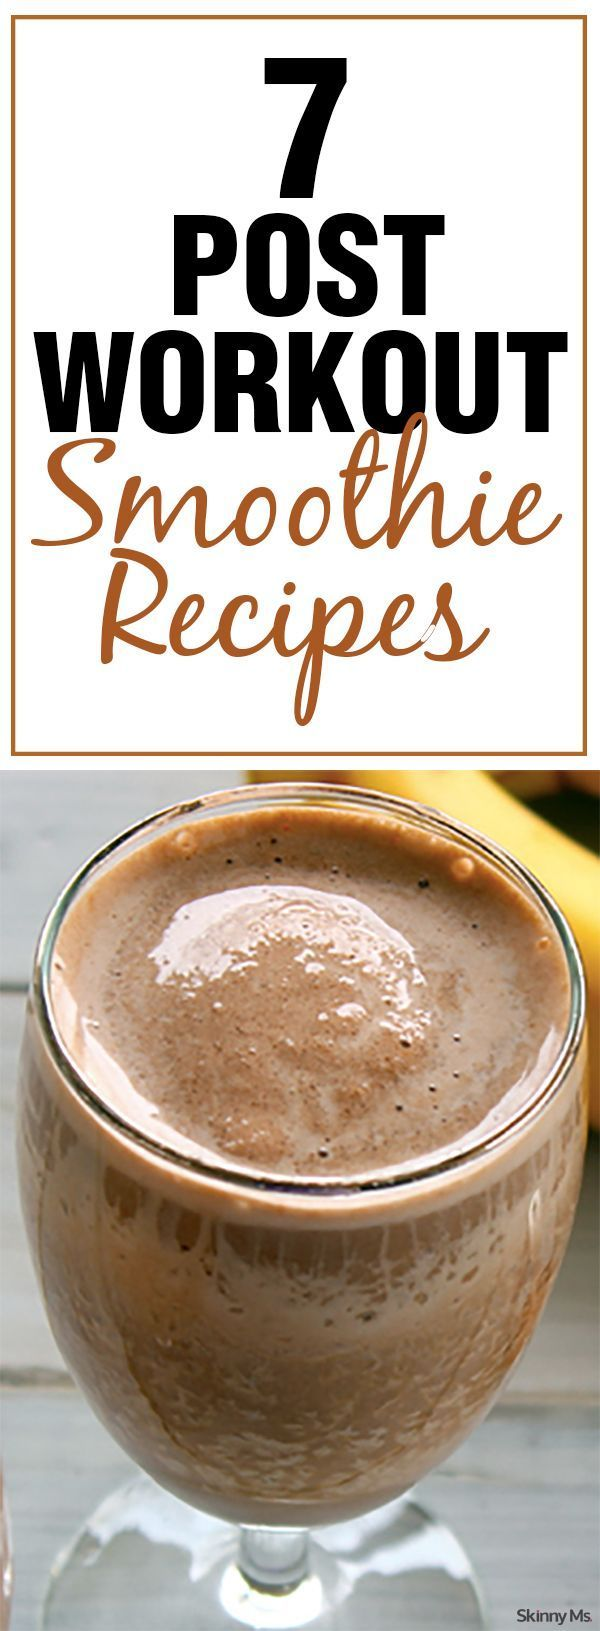 120 best pre and post workout food images on pinterest post 7 post workout smoothie recipes forumfinder Image collections